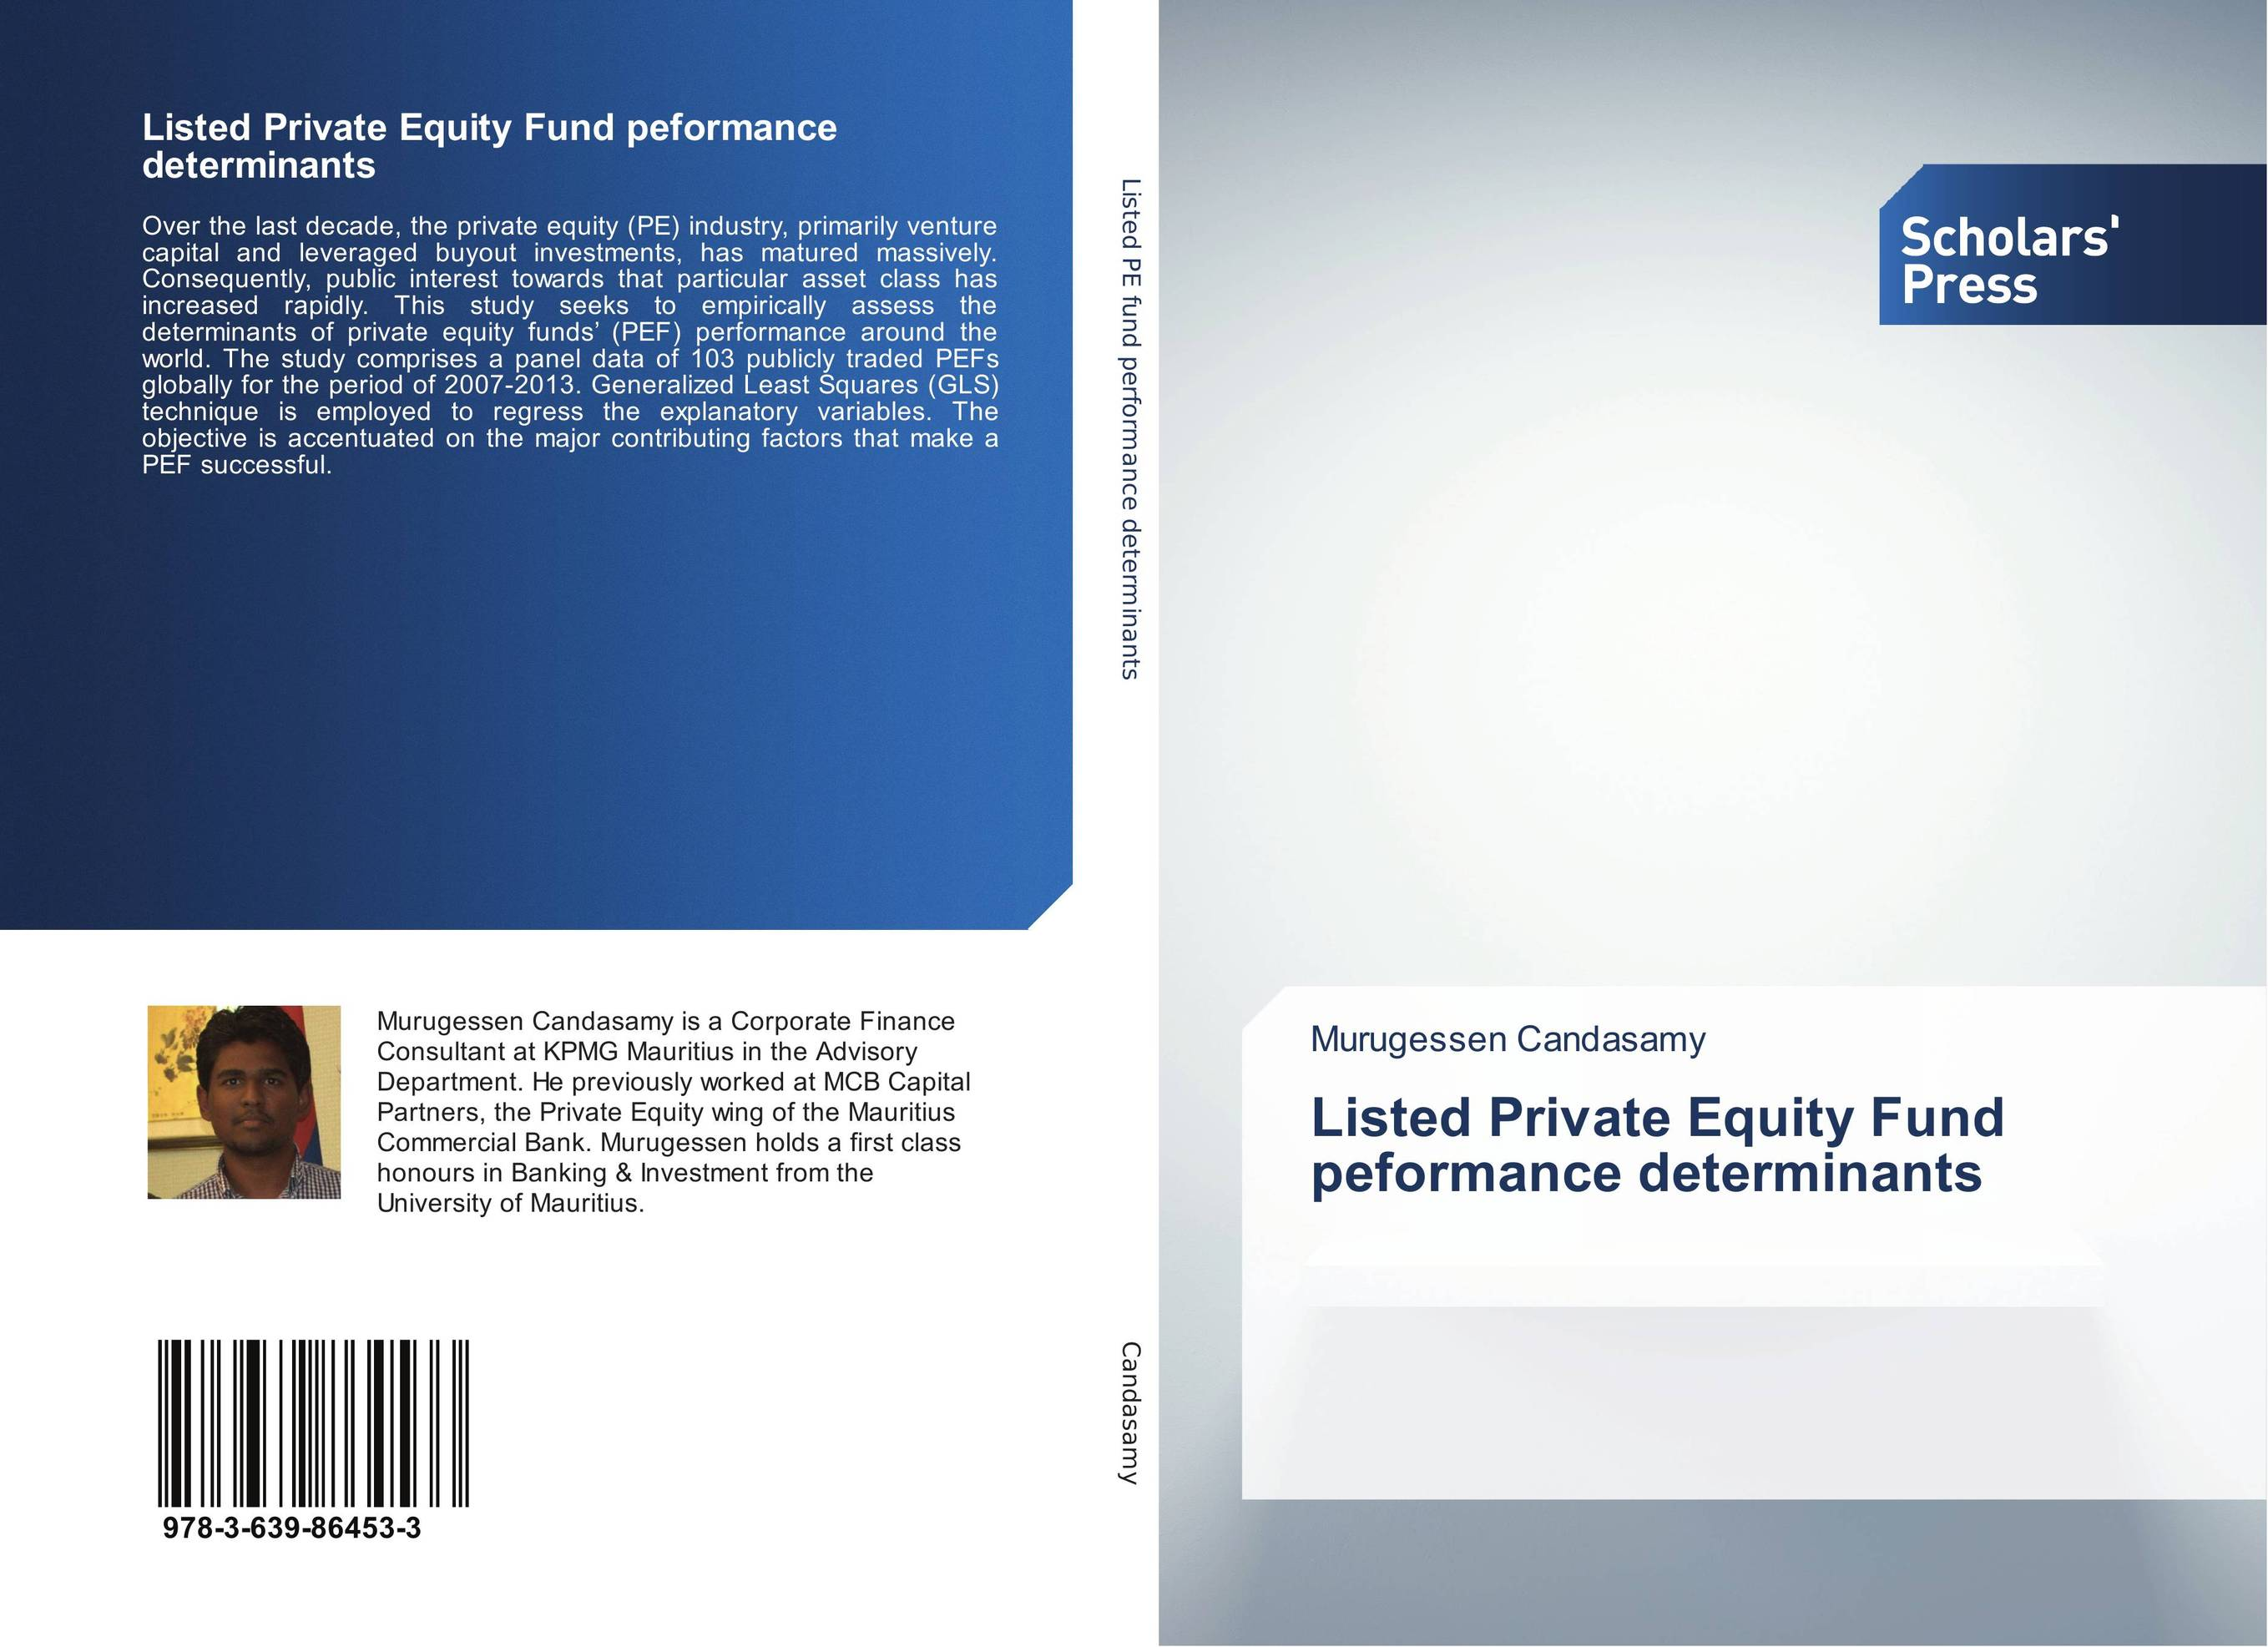 Listed Private Equity Fund peformance determinants banknotes of the world 2007 банкноты стран мира 2007 выпуск 7